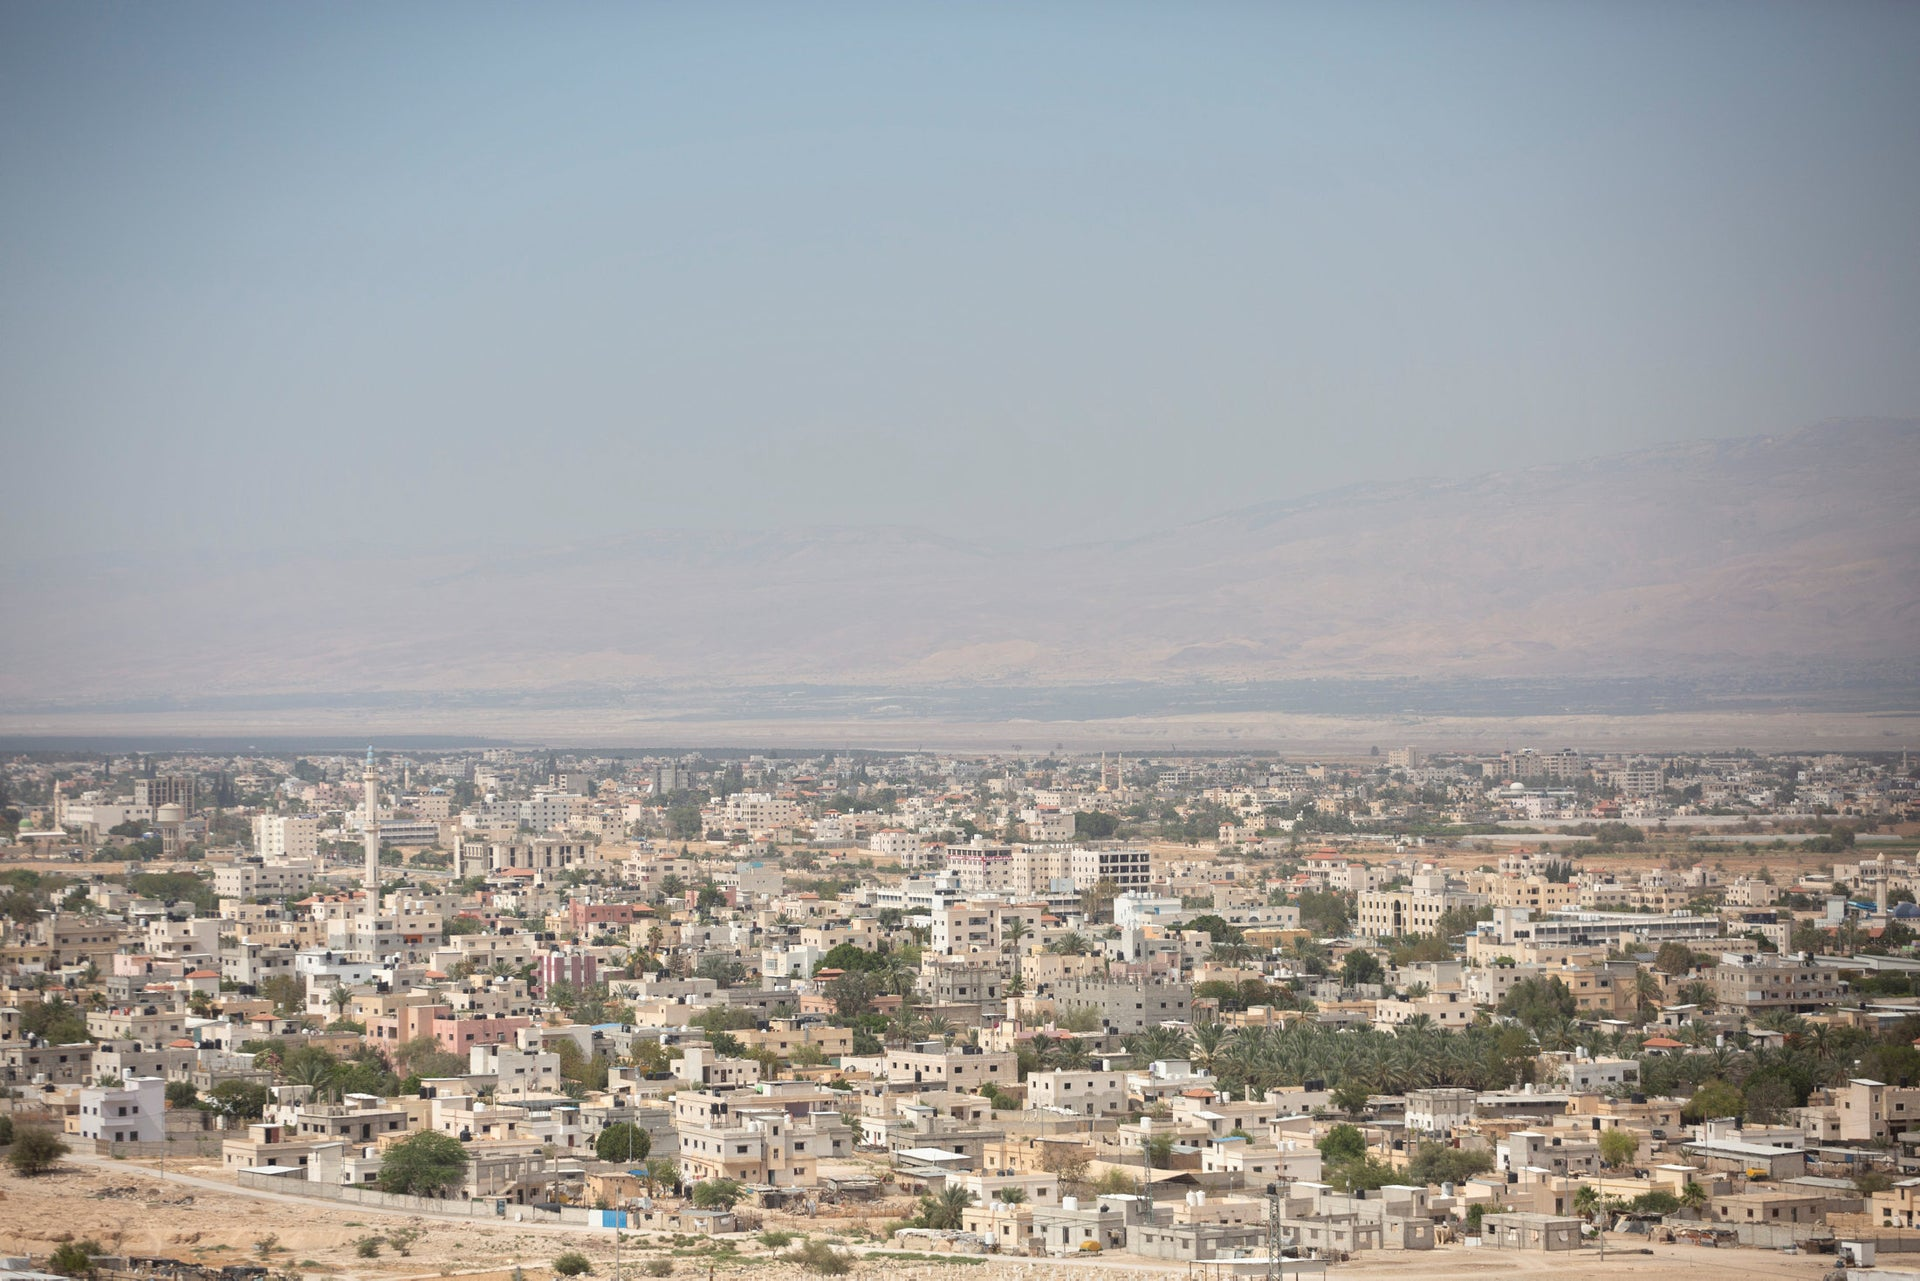 The city of Jericho, in the Jordan Valley, June 11, 2020.